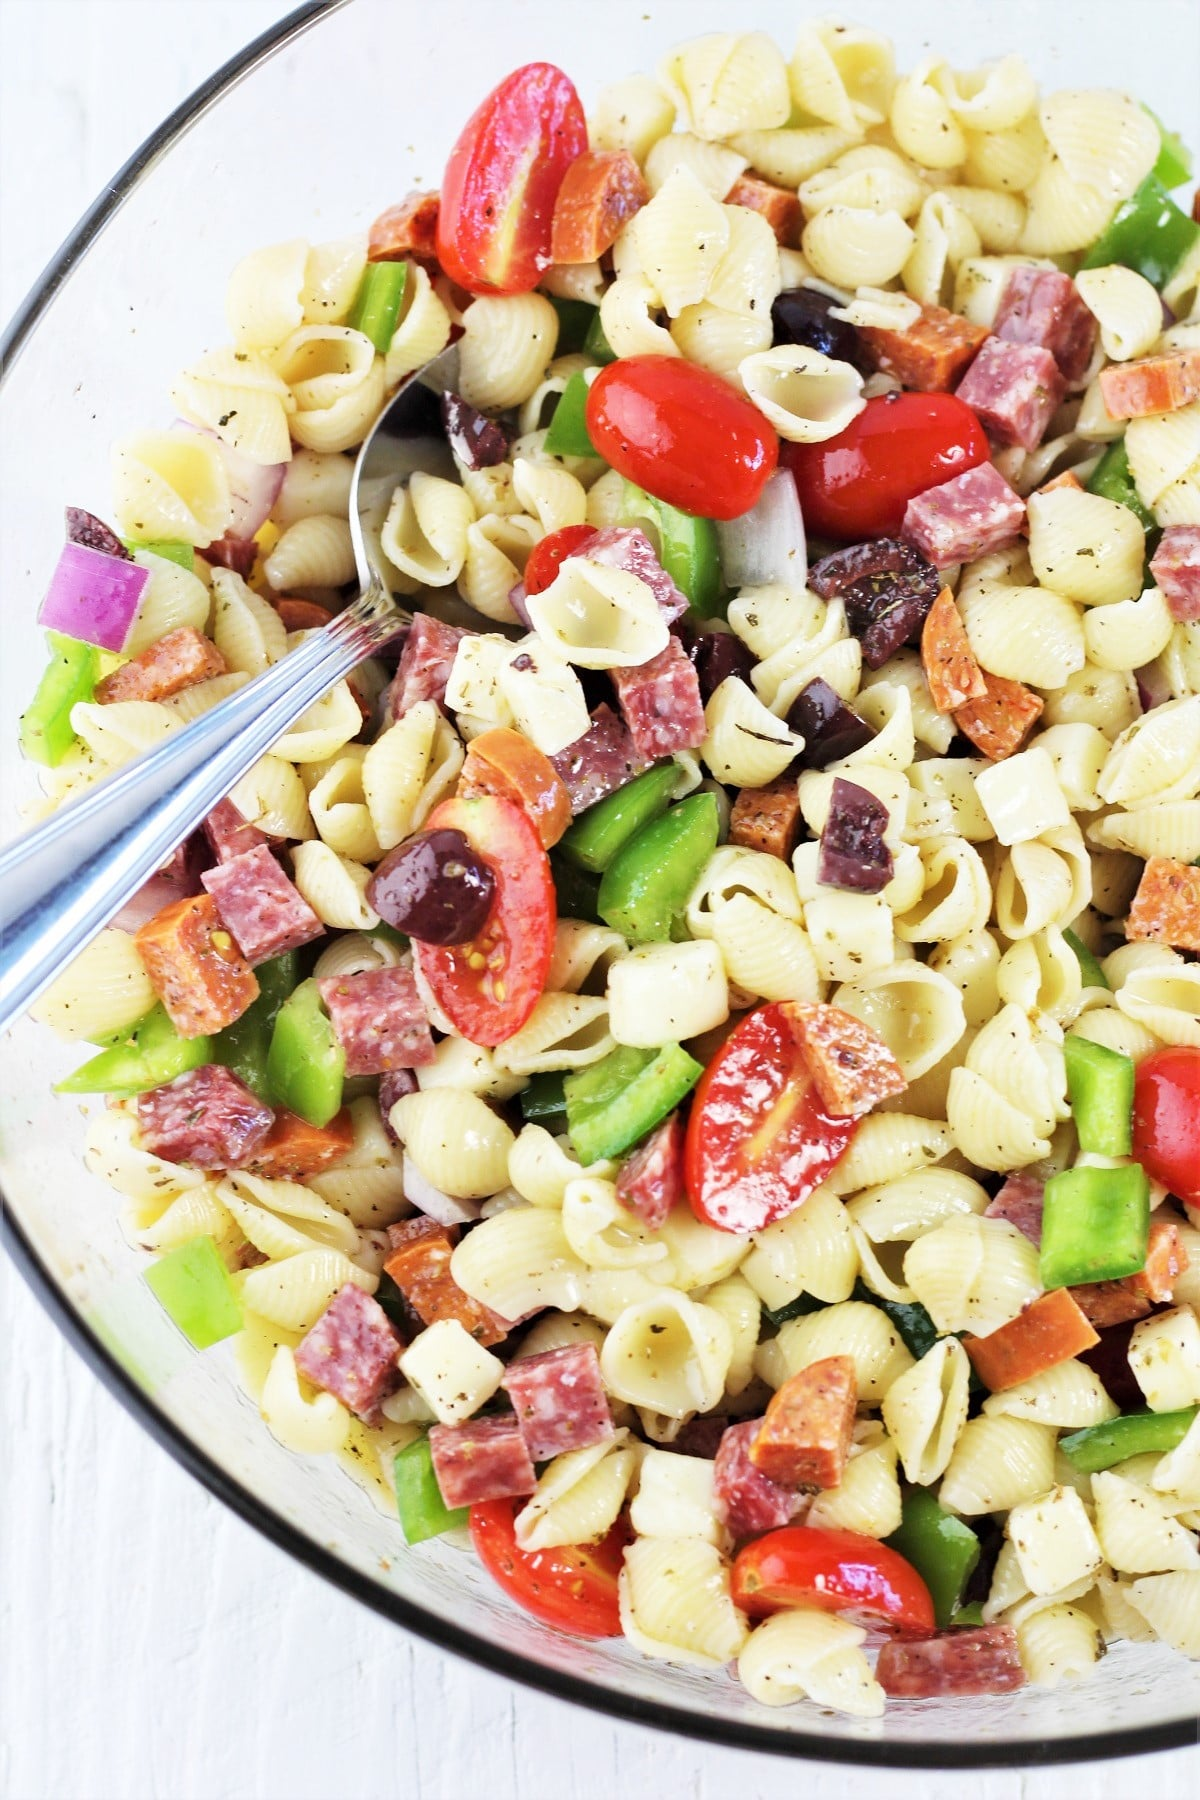 large bowl of pasta salad with a serving spoon